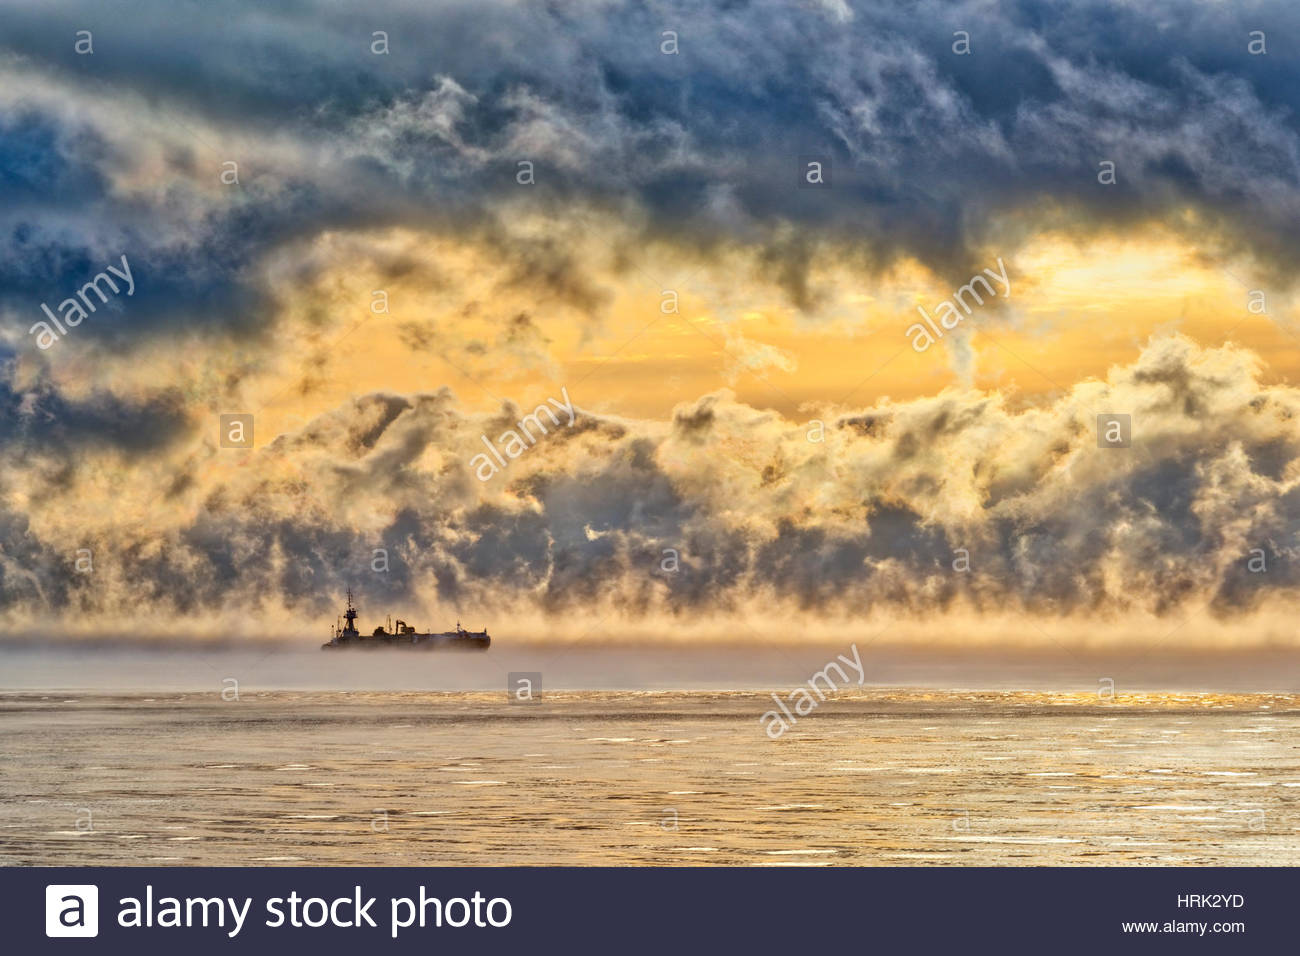 a-boat-silhouetted-against-a-dramatic-sunset-HRK2YD.jpg